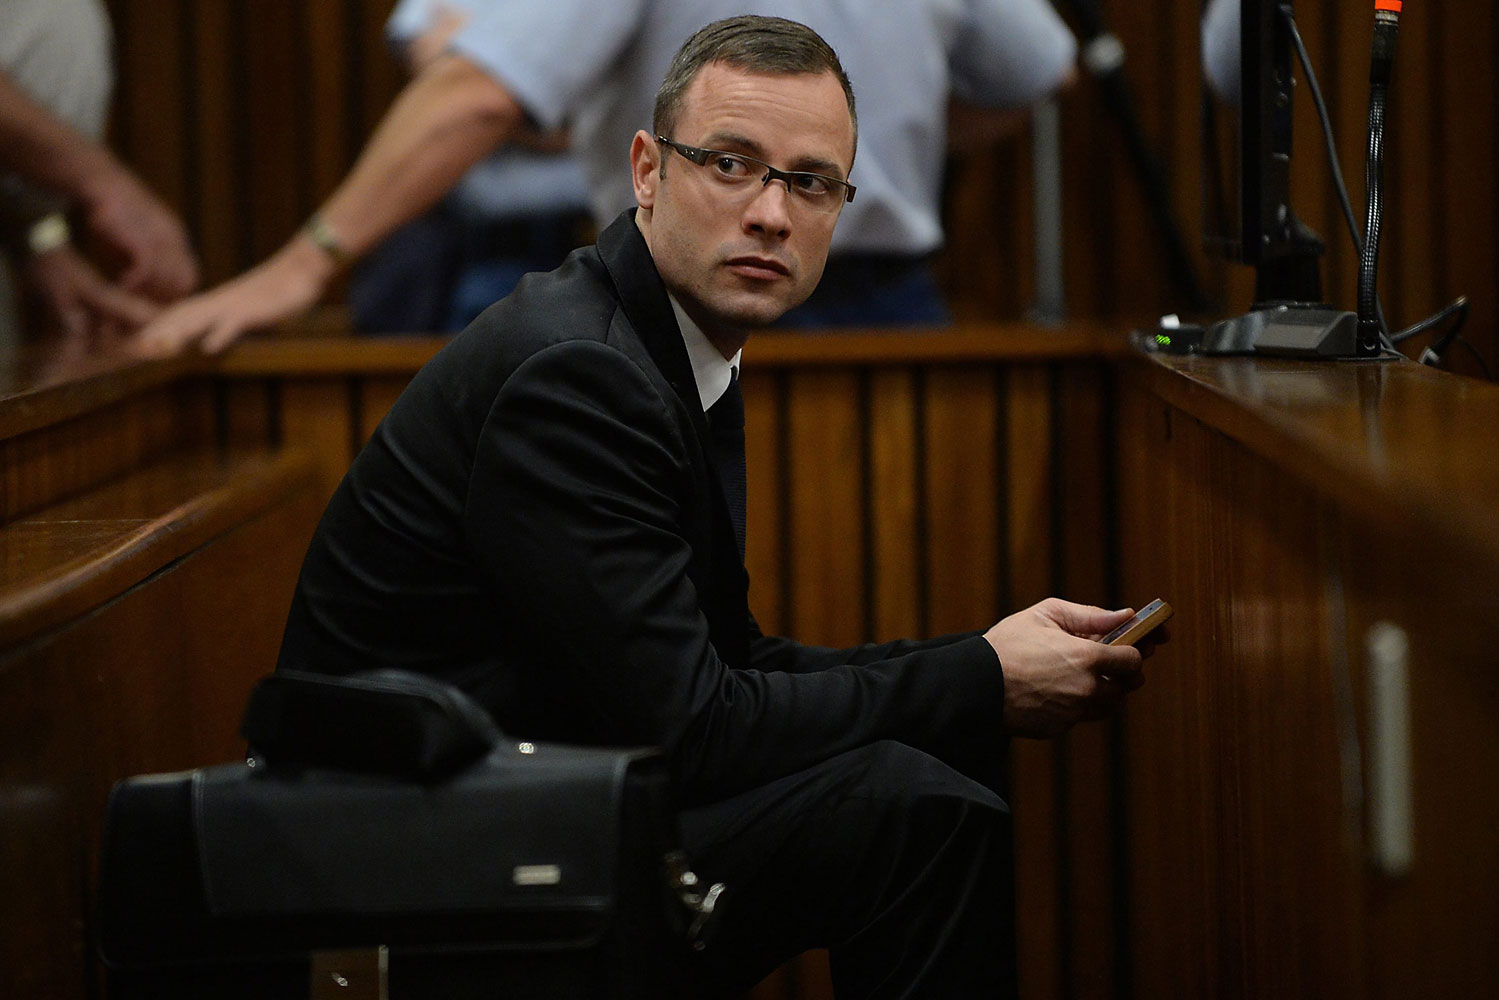 South African Paralympic athlete Oscar Pistorius is seen during his ongoing murder trial at the high court in Pretoria, South Africa, March 14, 2014.